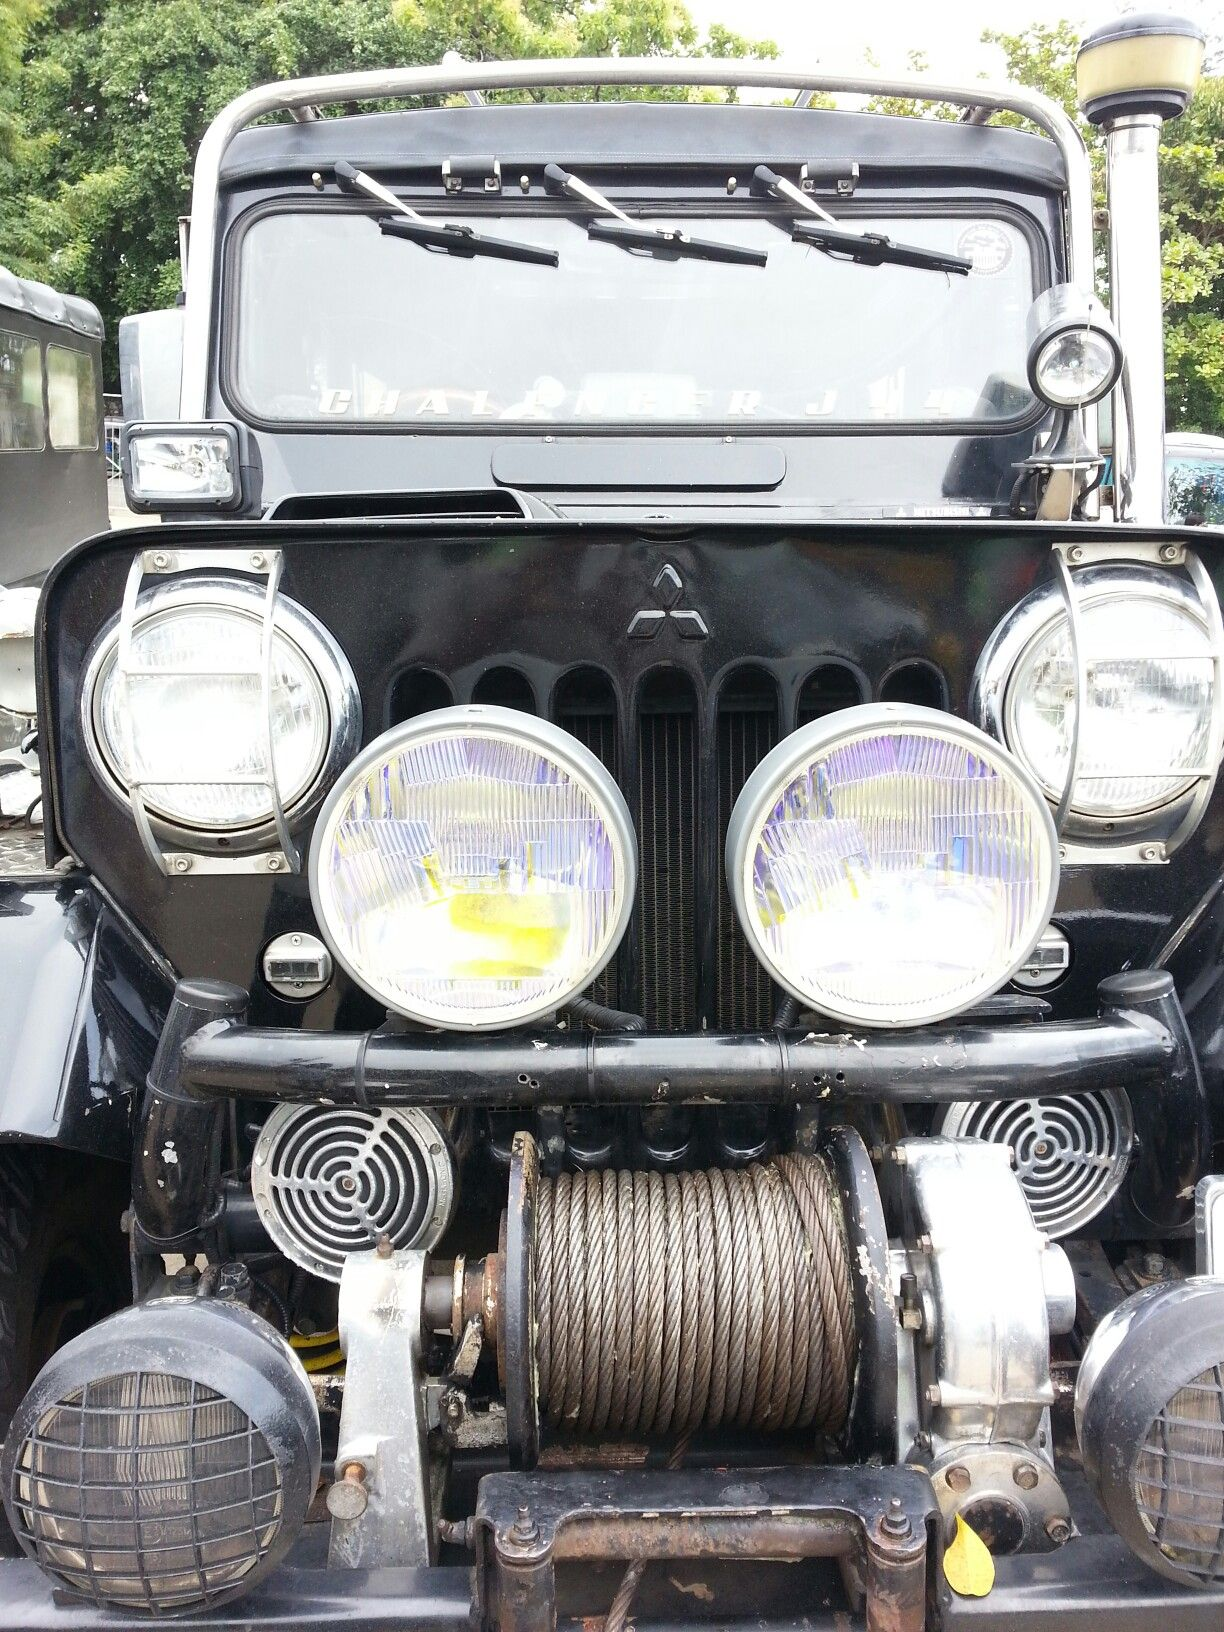 Pin by Dimuthu Sampath on 4DR5 Mitsubishi jeep | Japanese cars, Cars